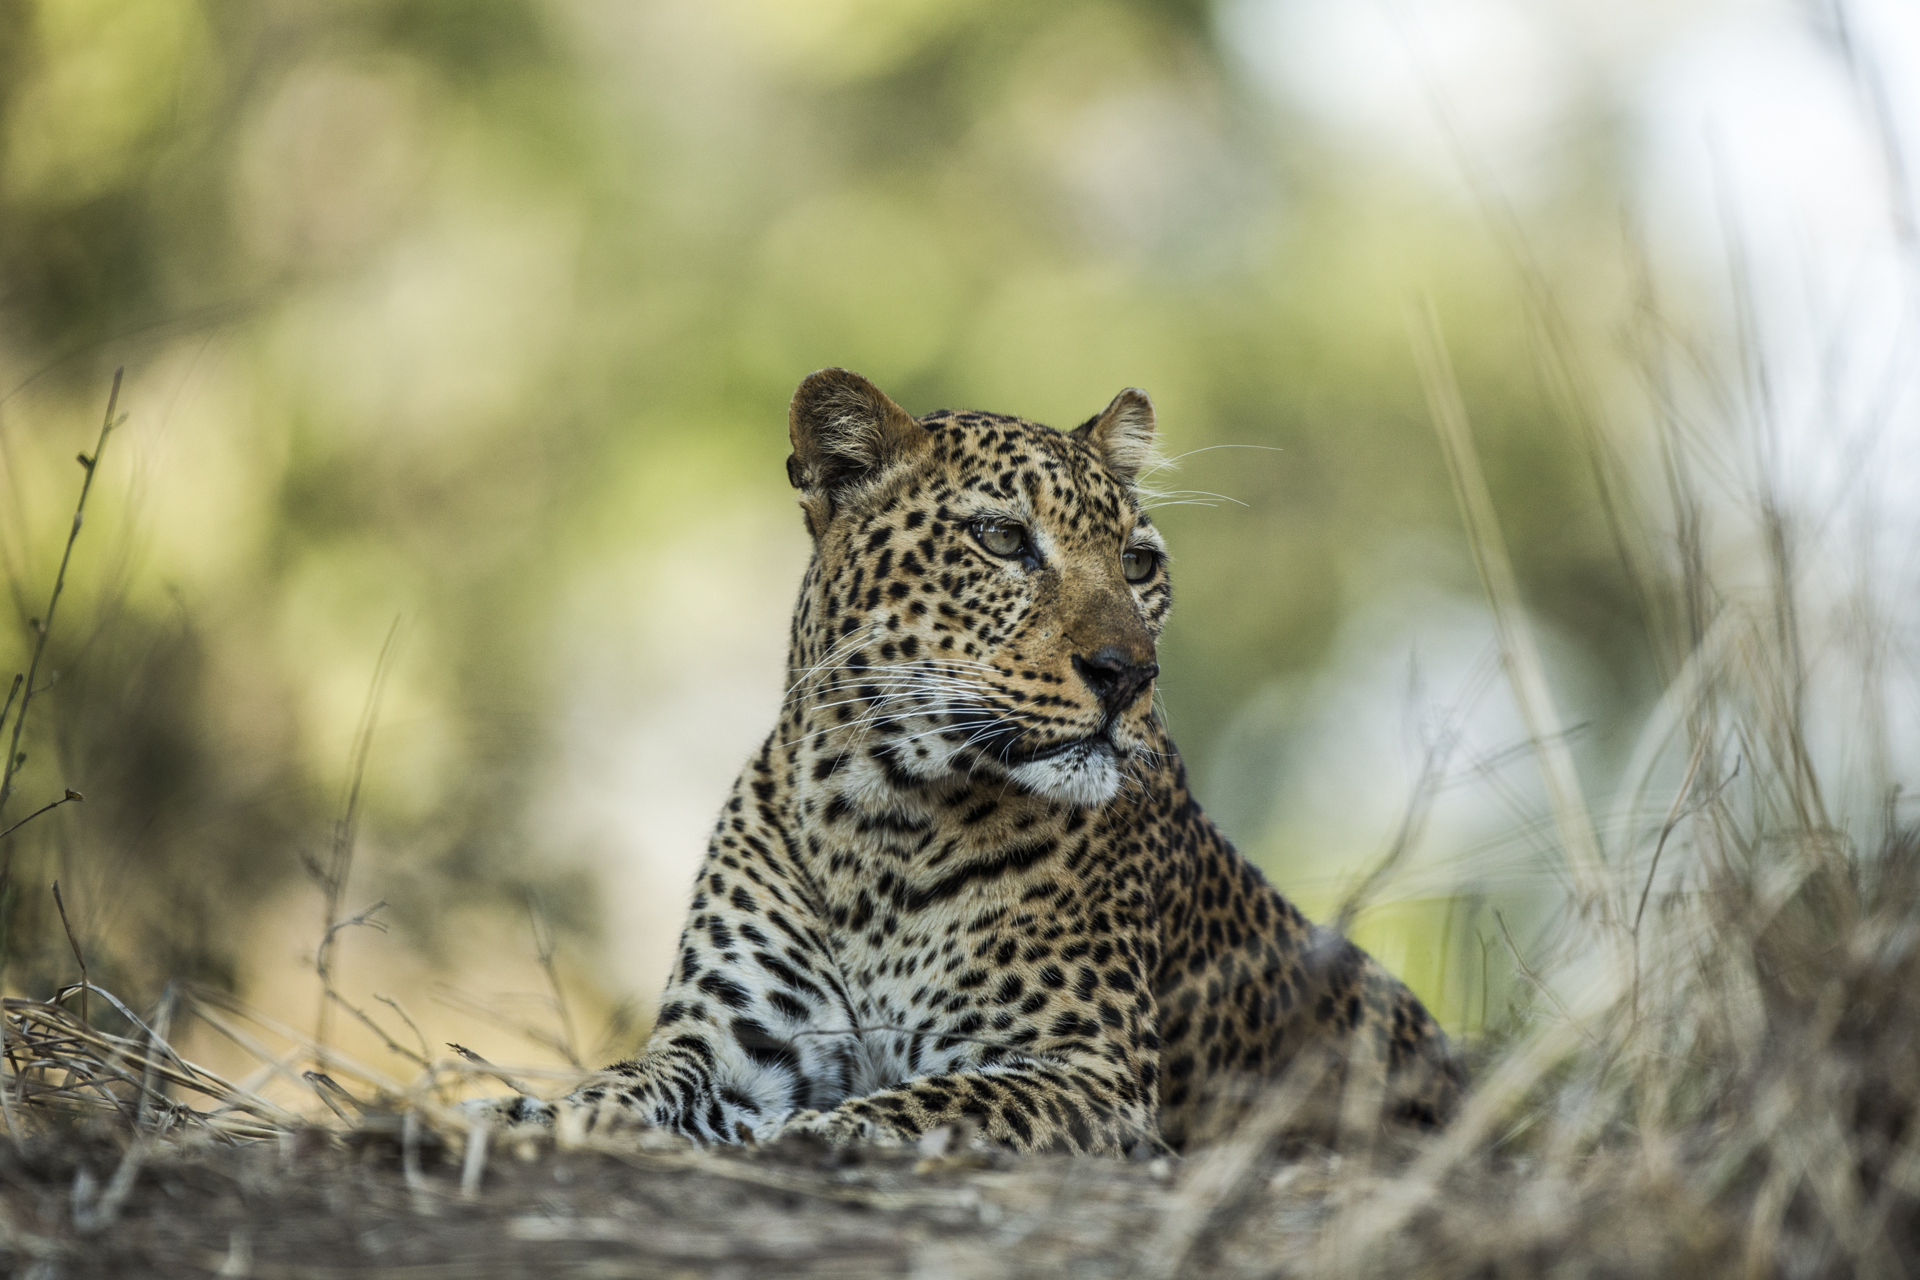 Alice, a 12 year old leopard, famous in the park for her bold nature. The mother of the 4 cubs I followed alongside her.